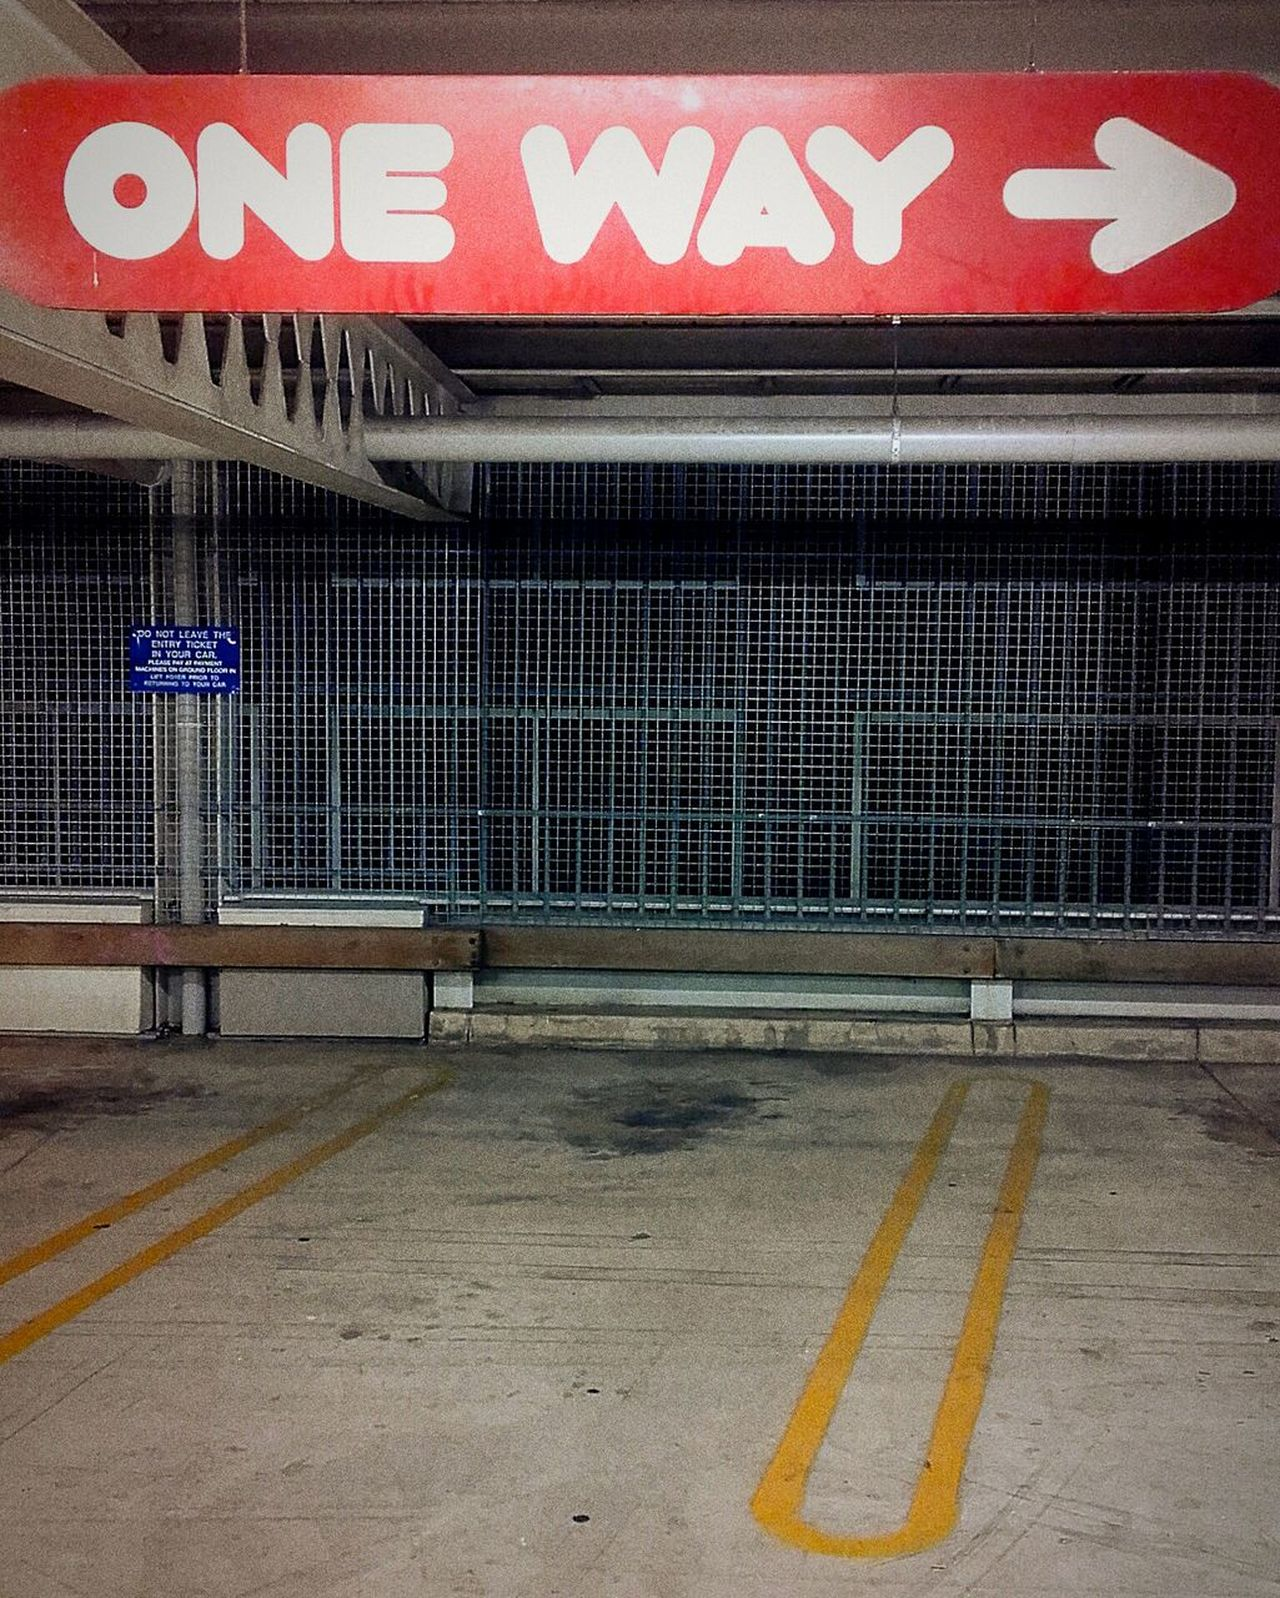 One Way Signs, Signs, & More Signs Oneway Signssignseverywhere Signs Sign Signporn Sign, Sign, Everywhere A Sign SIGN. SIGNS. SignsSignsAndMoreSigns Signs Signs Everywhere Signs SignSignEverywhereASign Car Park Signs Signs_collection Signstalkers White Arrows Arrows White Arrow Signs & More Signs One Way Sign One Way Only Signswitharrows Red And White Red & White